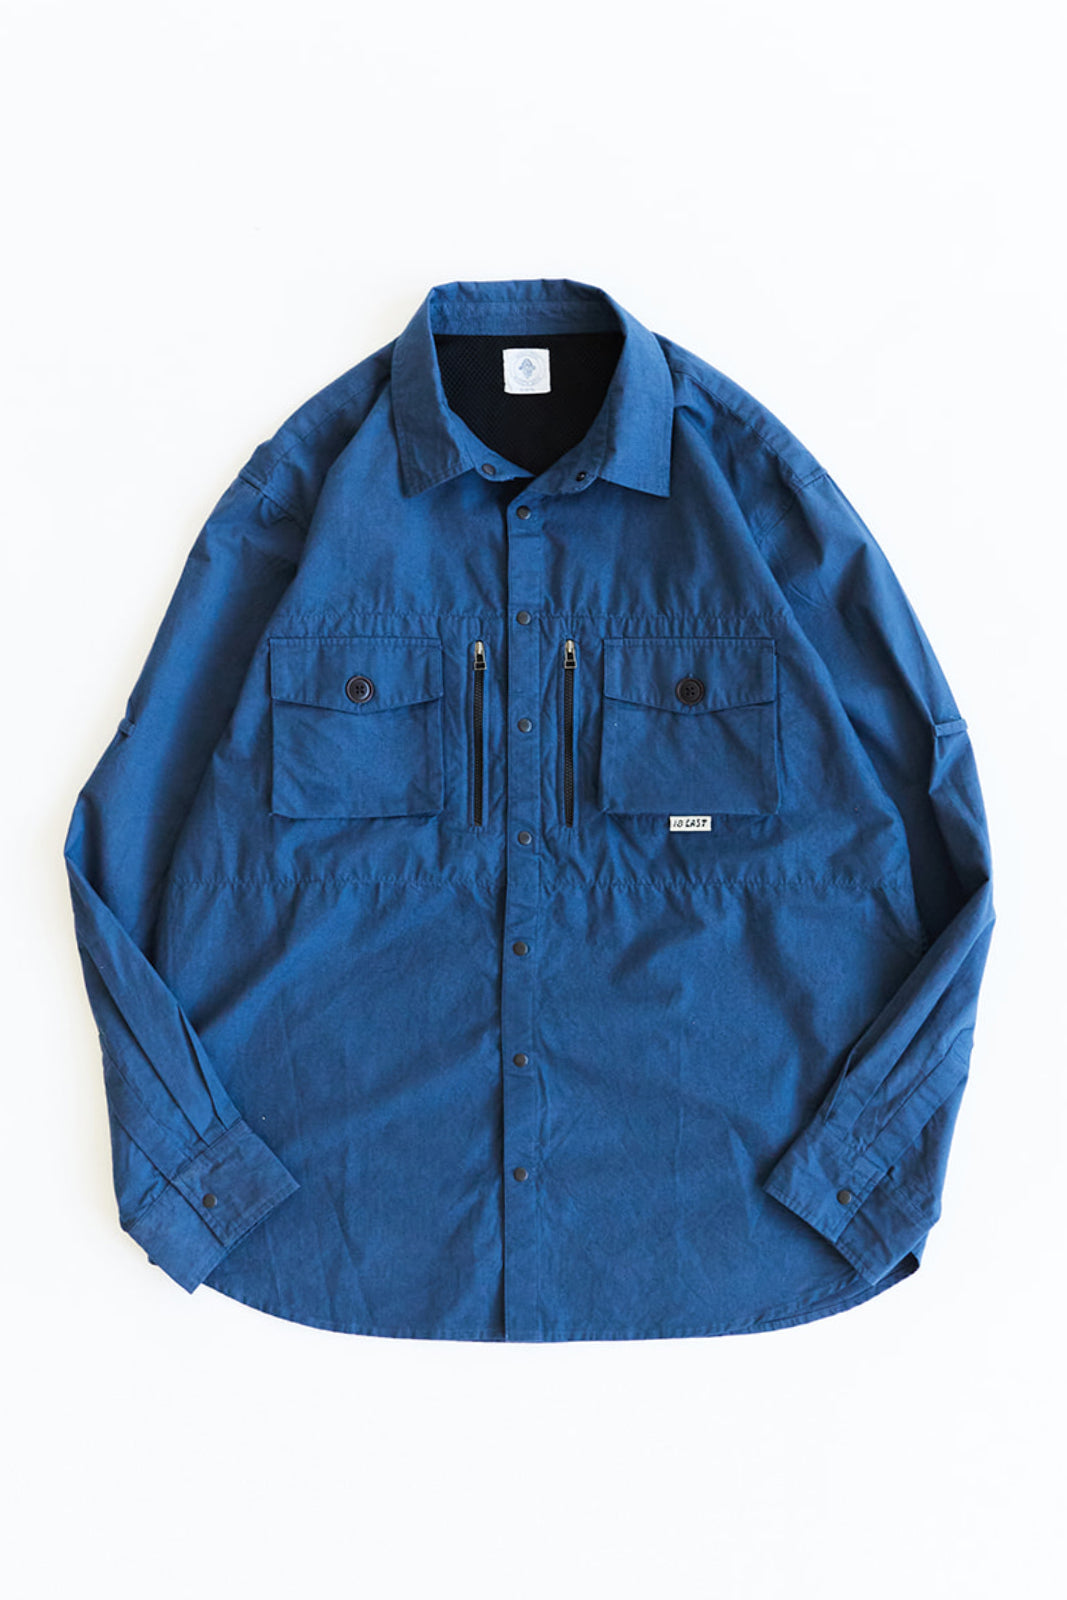 GHIBAIL FISHING SHIRT - NAVY COTTON RIPSTOP